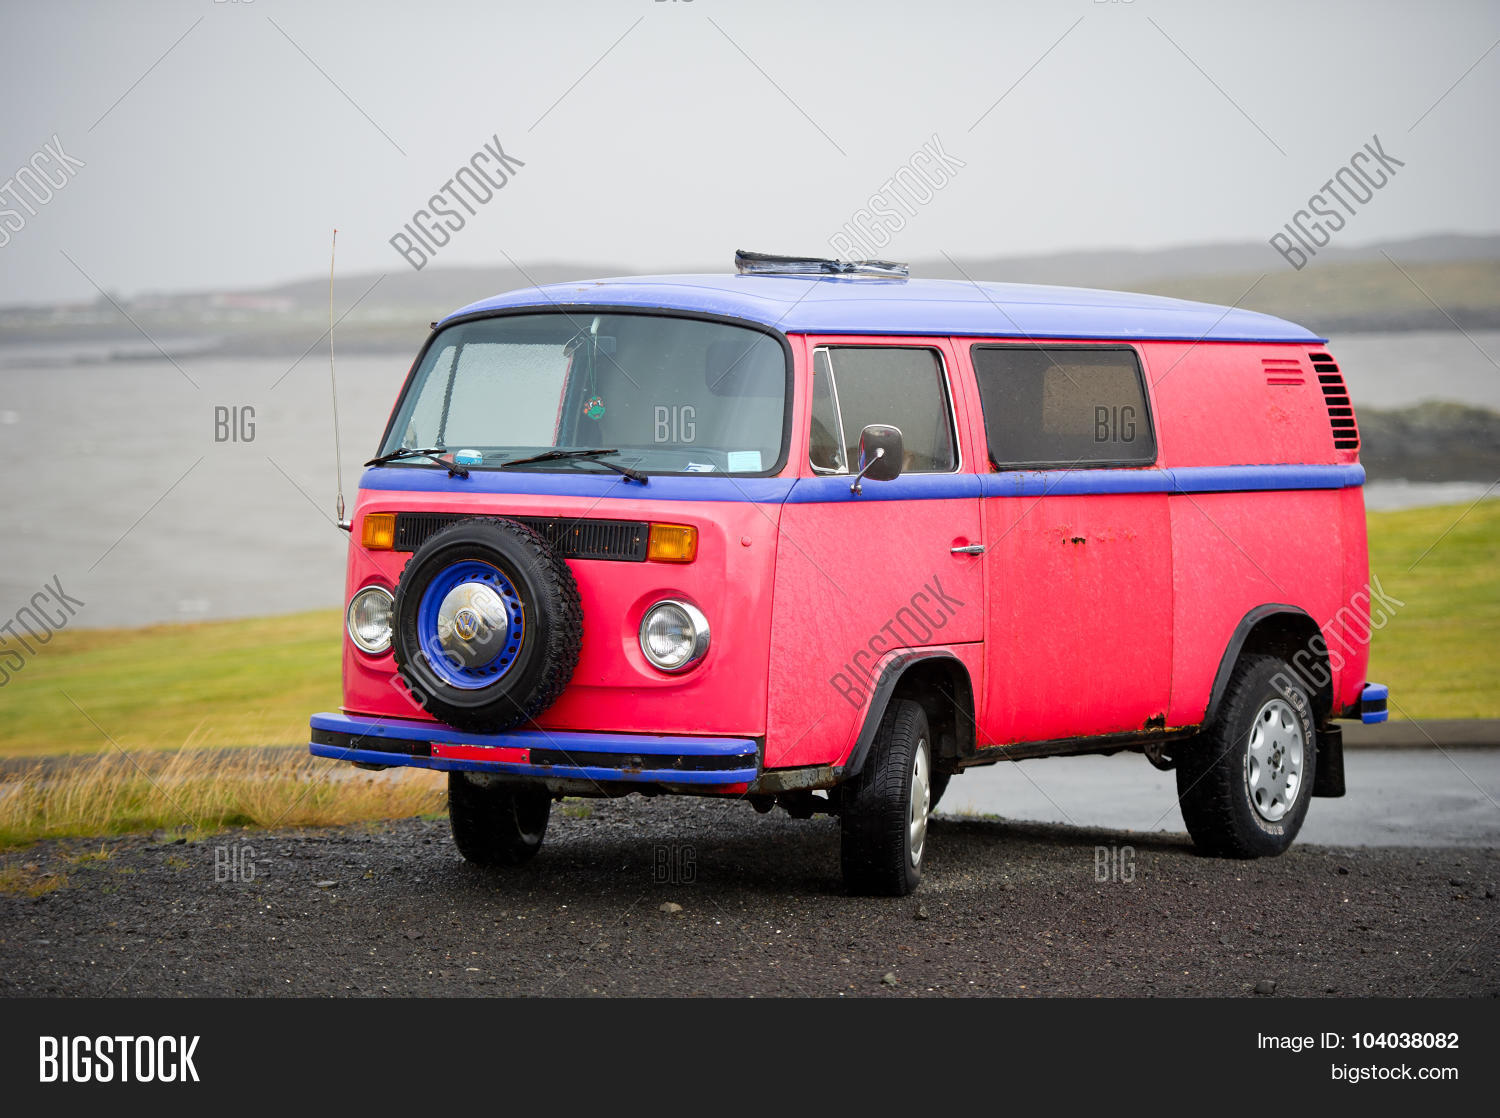 Vw Bus 2015 >> Vw Bus Volkswagen Image Photo Free Trial Bigstock